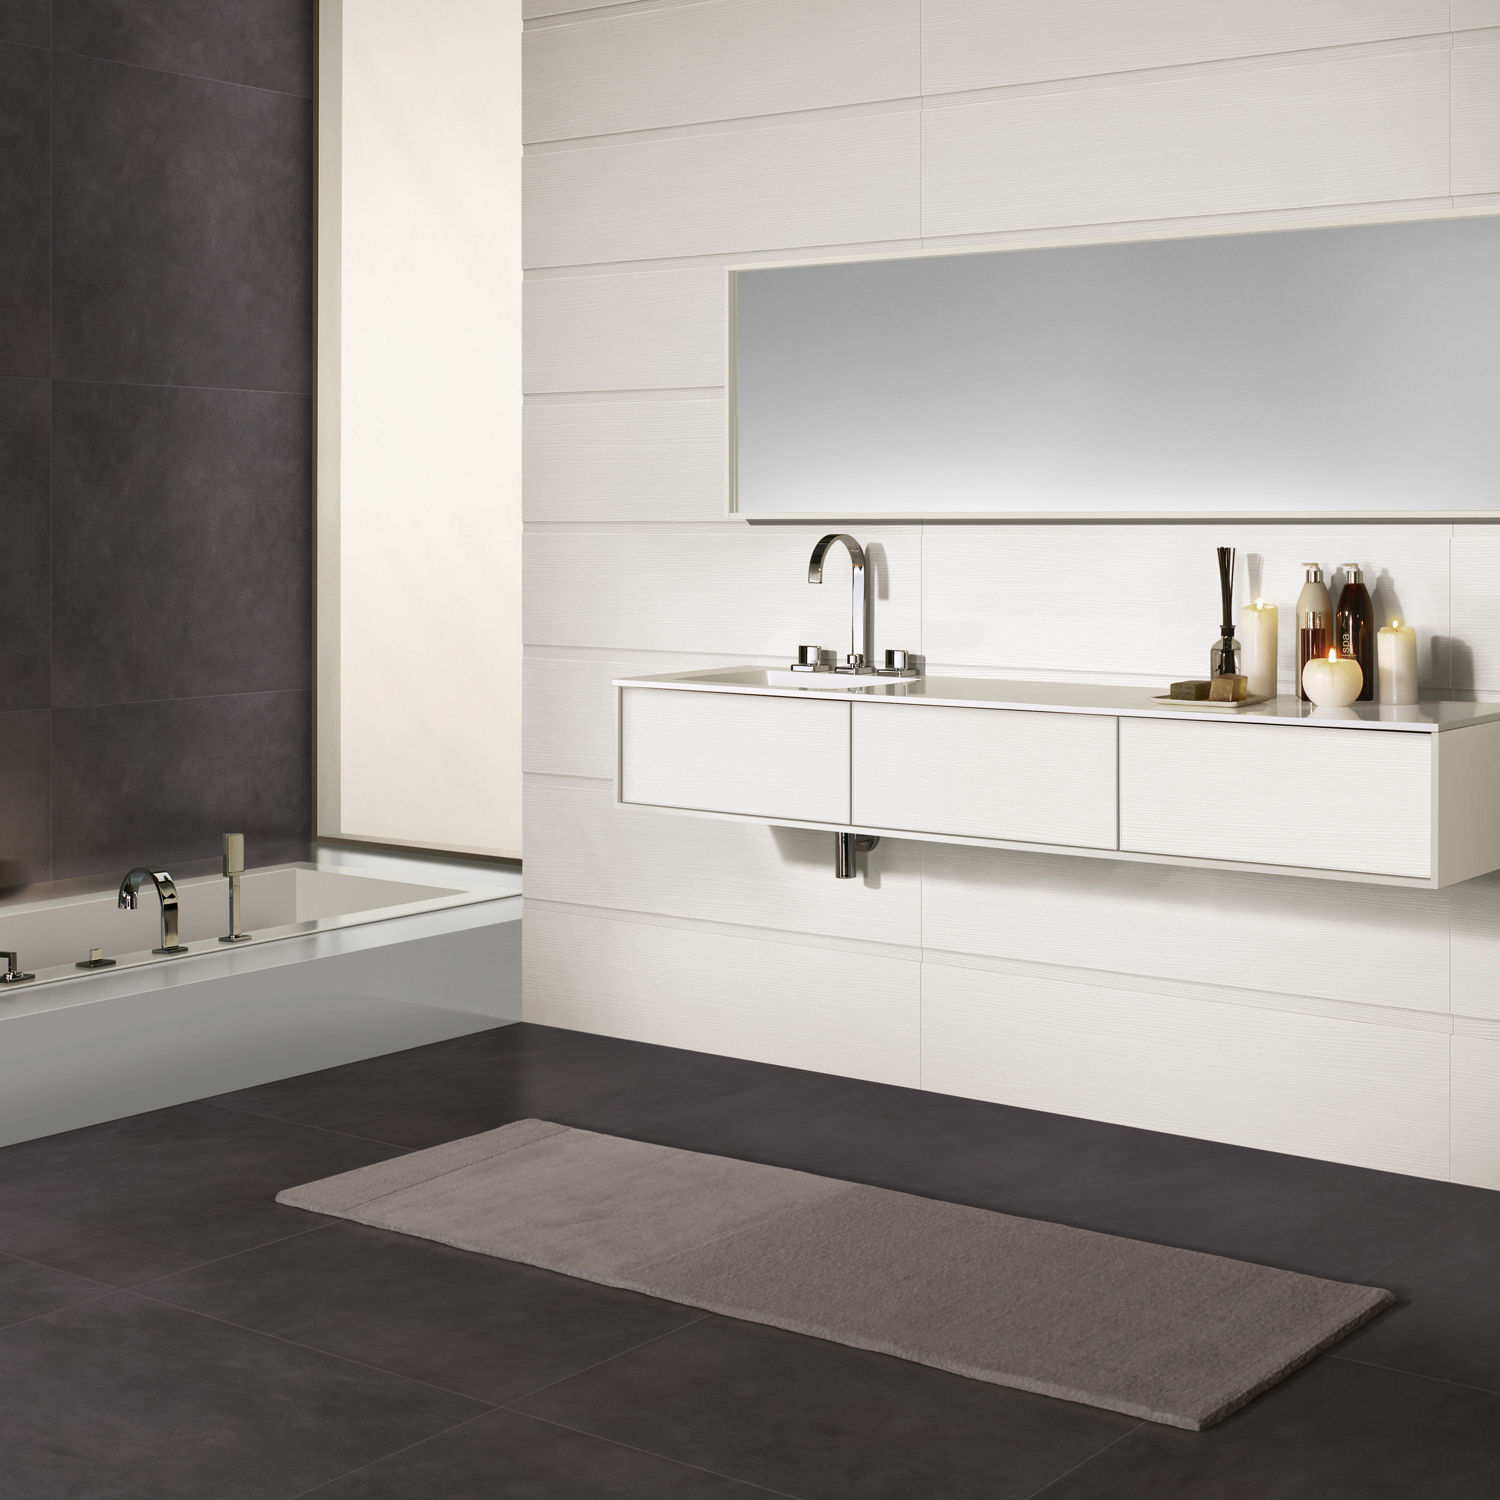 Bathroom-Decor-Best-Of-Bathroom-Flooring-Tile-With-Black-Tile-